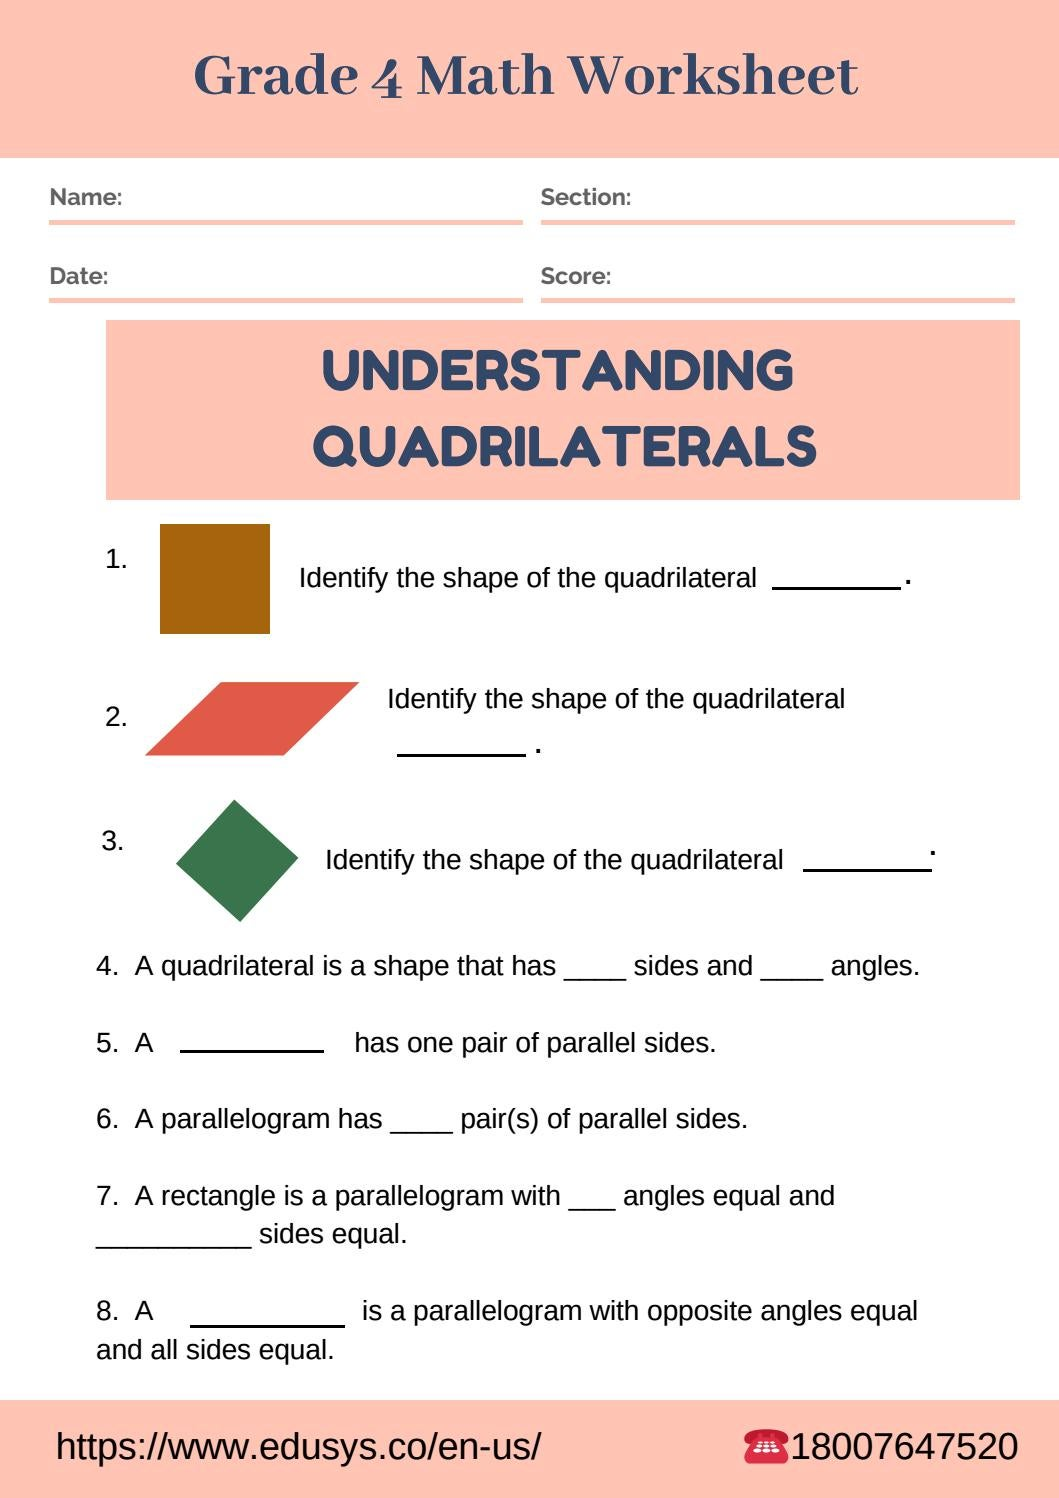 - Math Worksheet For Grade 4 Students By Nithya - Issuu